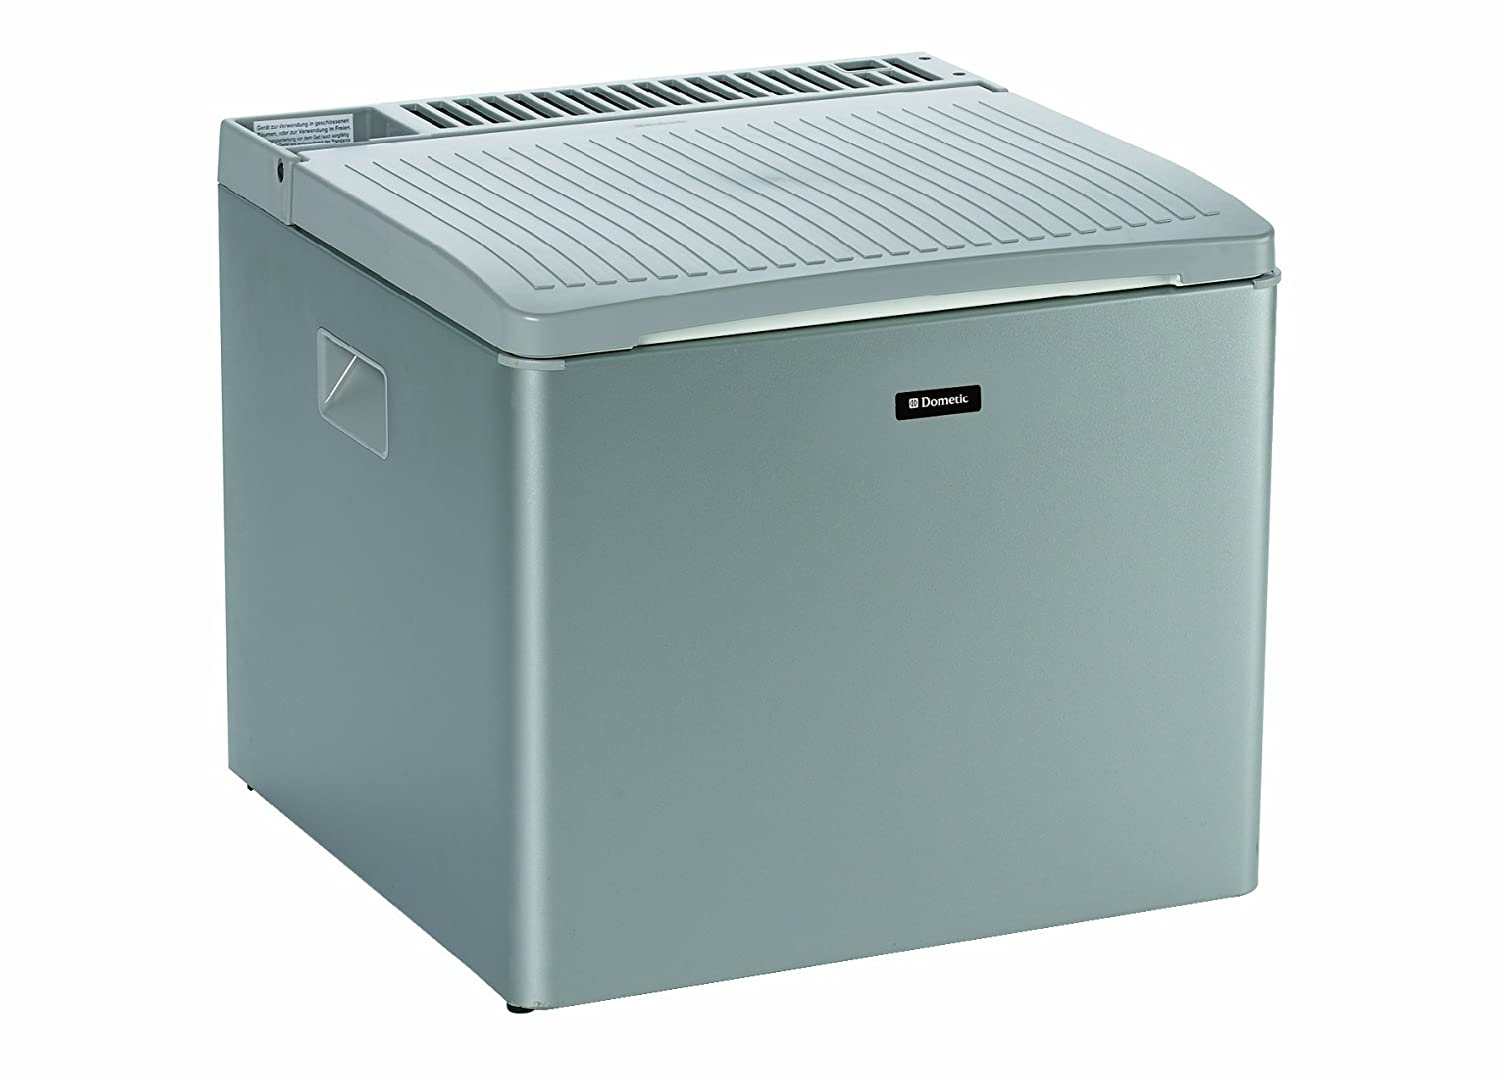 Silver 12-230 V Dometic RC1200EGP Gas Portable Cooler